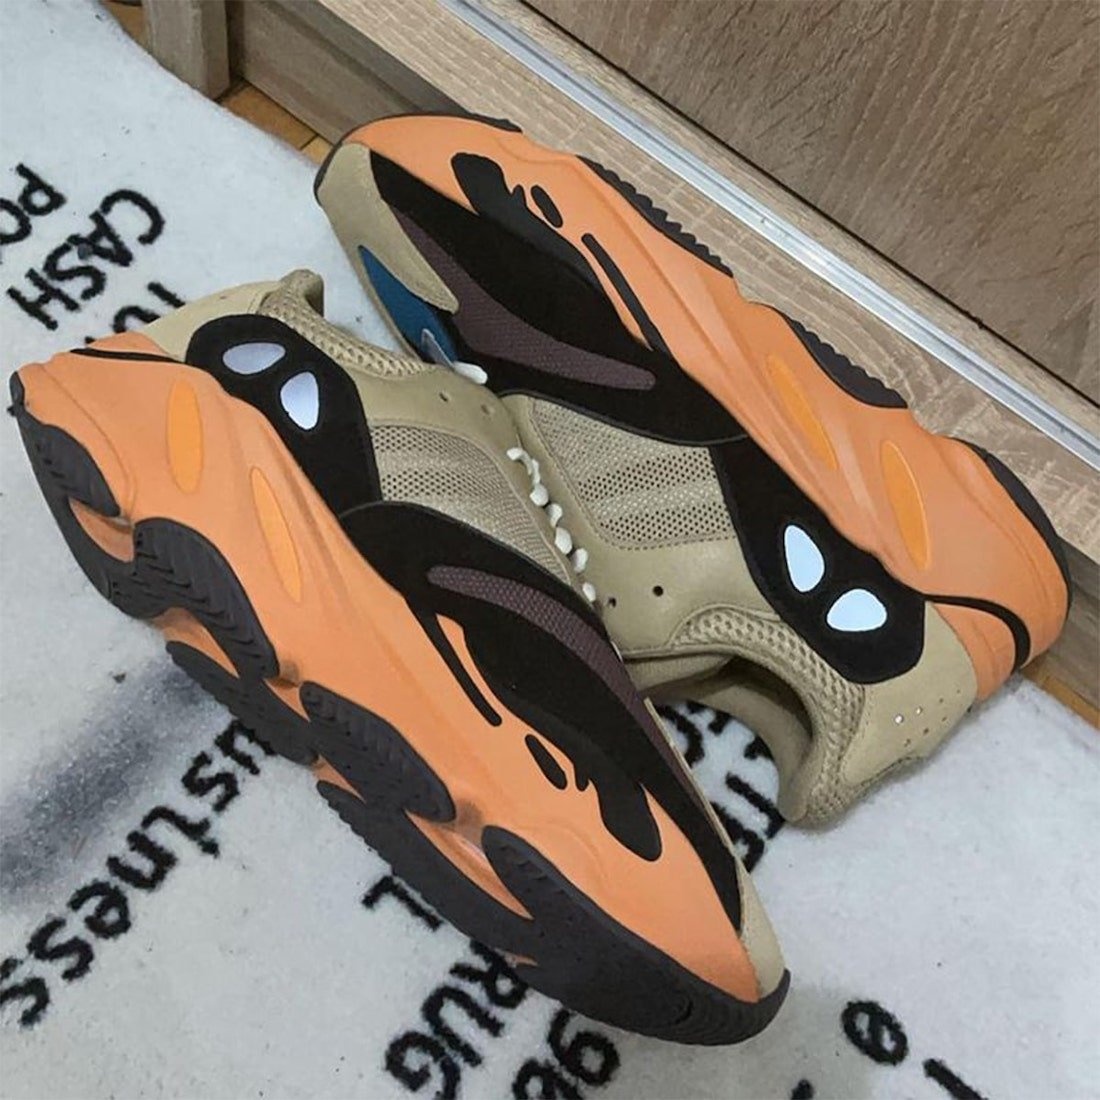 adidas Yeezy Boost 700 Enflame Amber Release Date